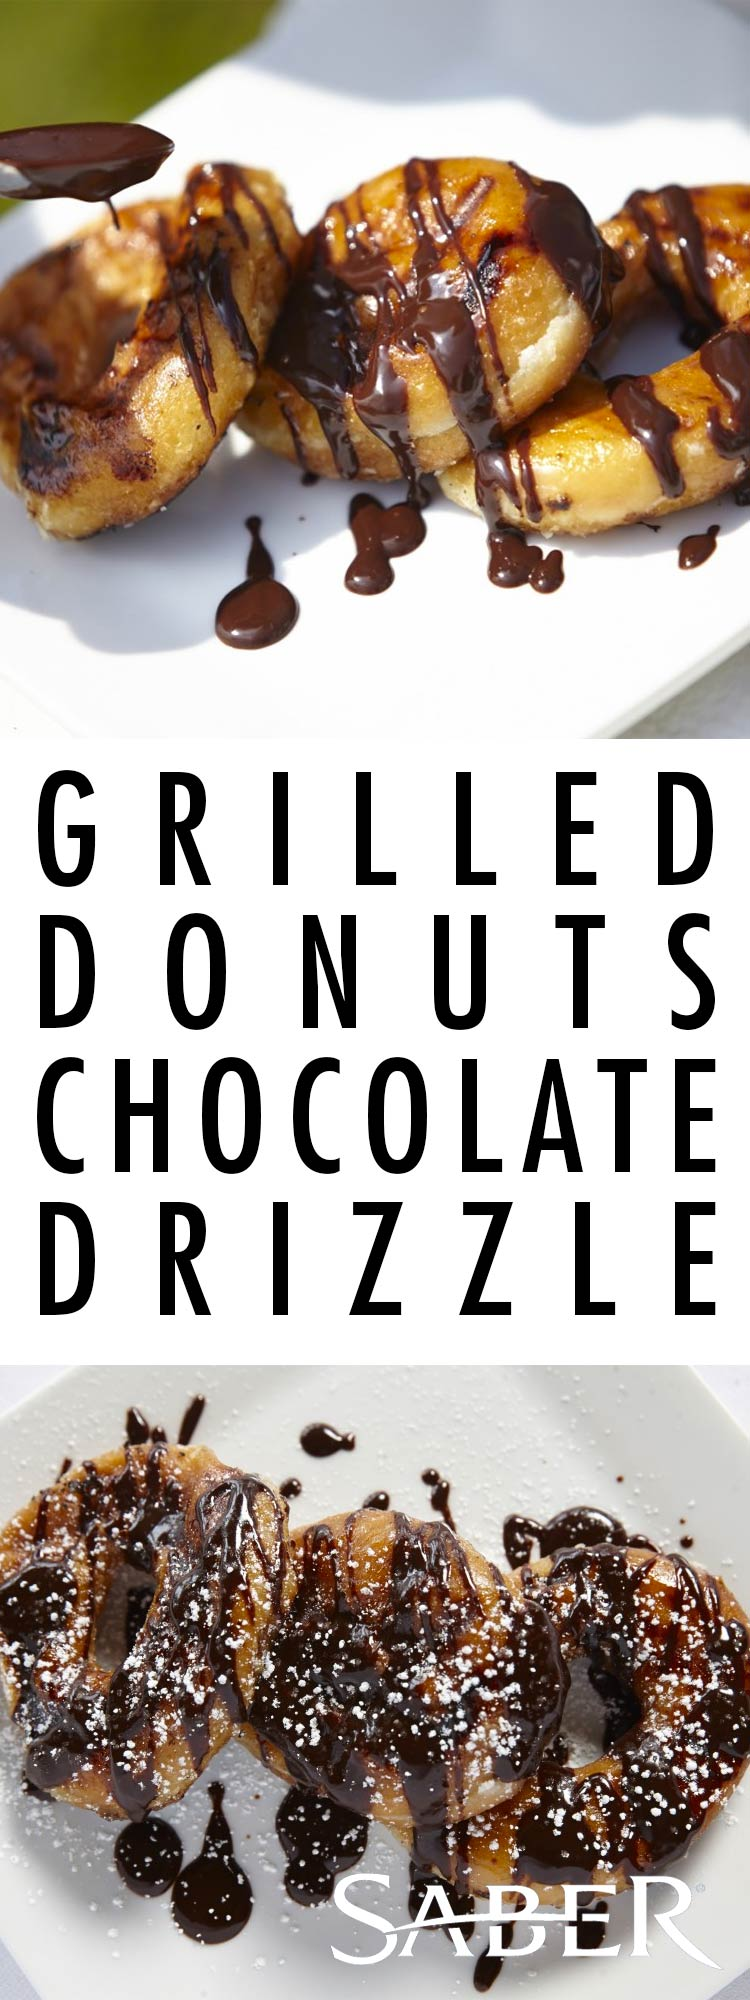 grilled donuts